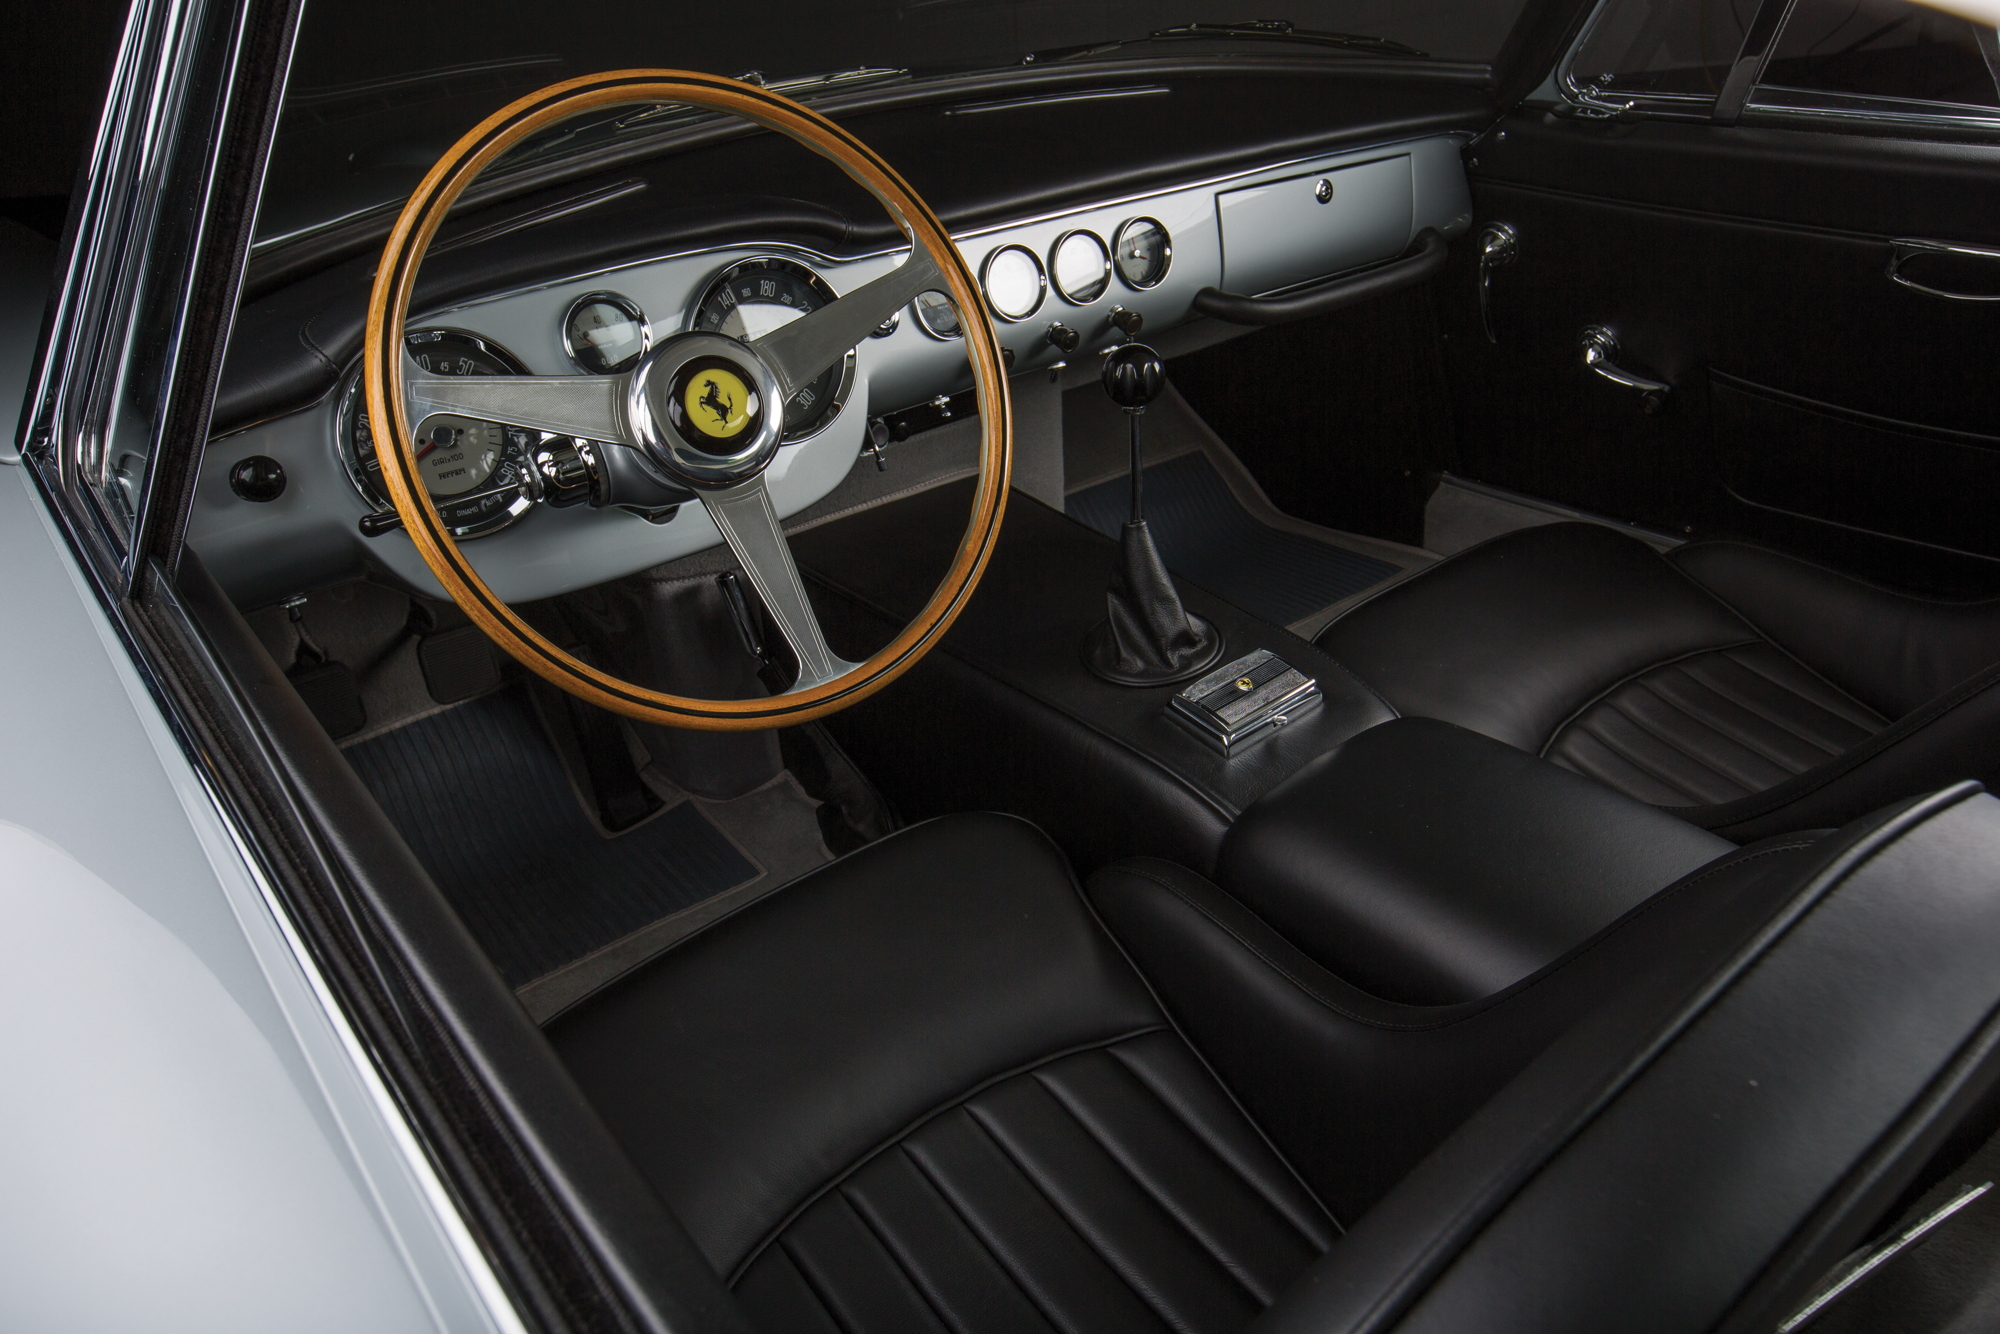 Ferrari 250 GT SWB interior Monterey car week 2017